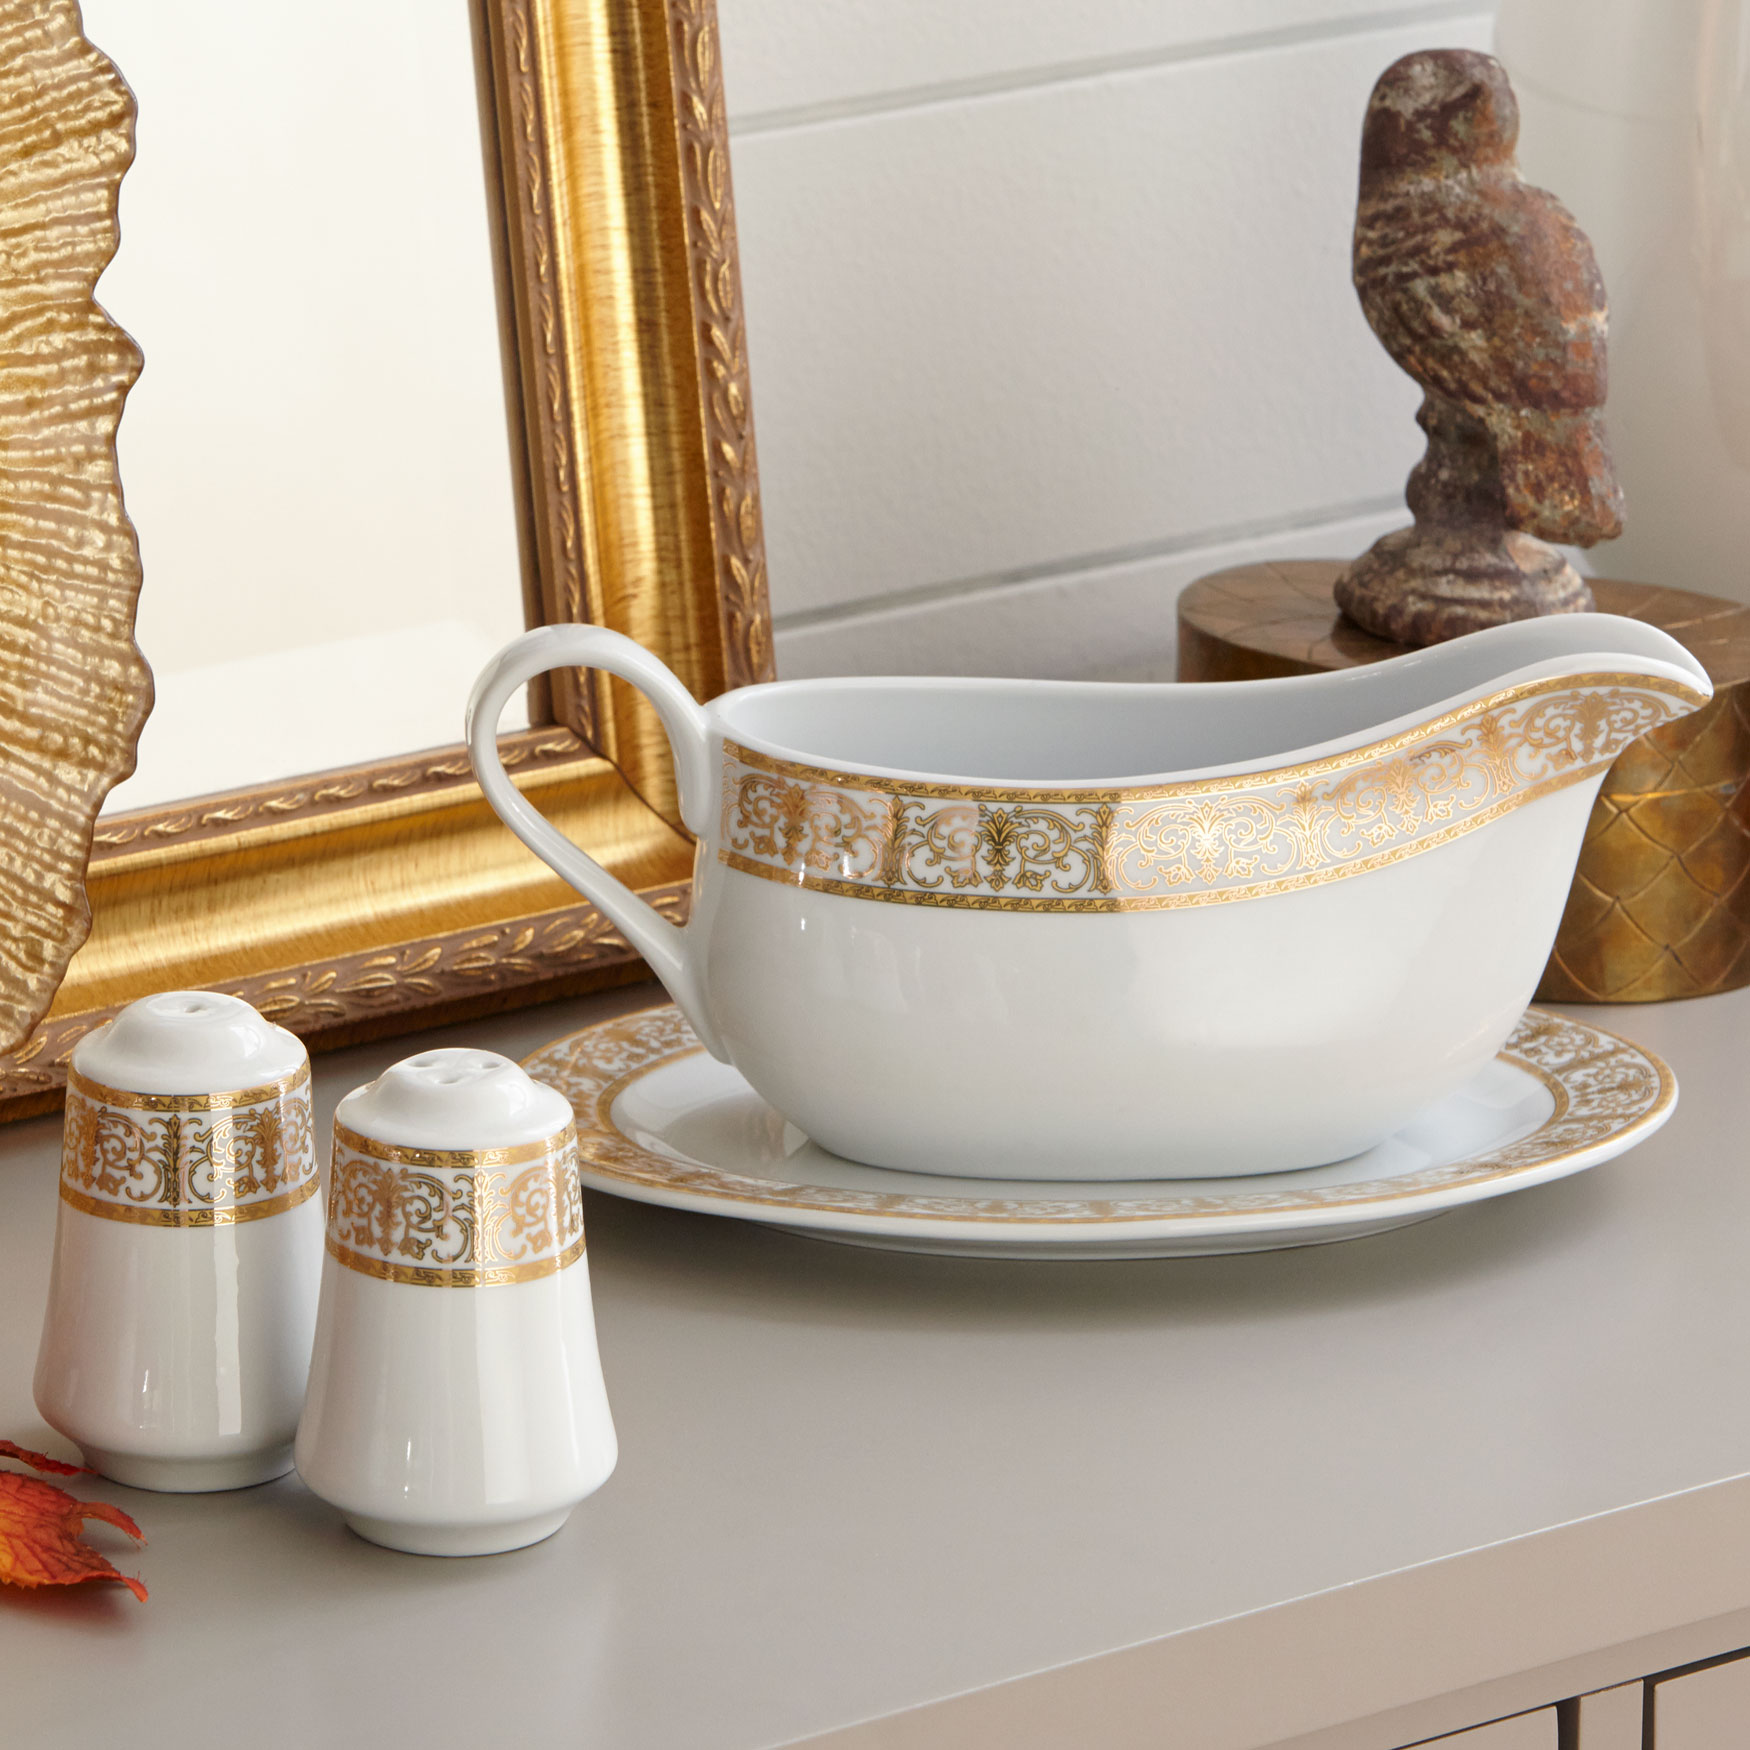 Medici 4-Pc. Porcelain Serving Set, GOLD WHITE